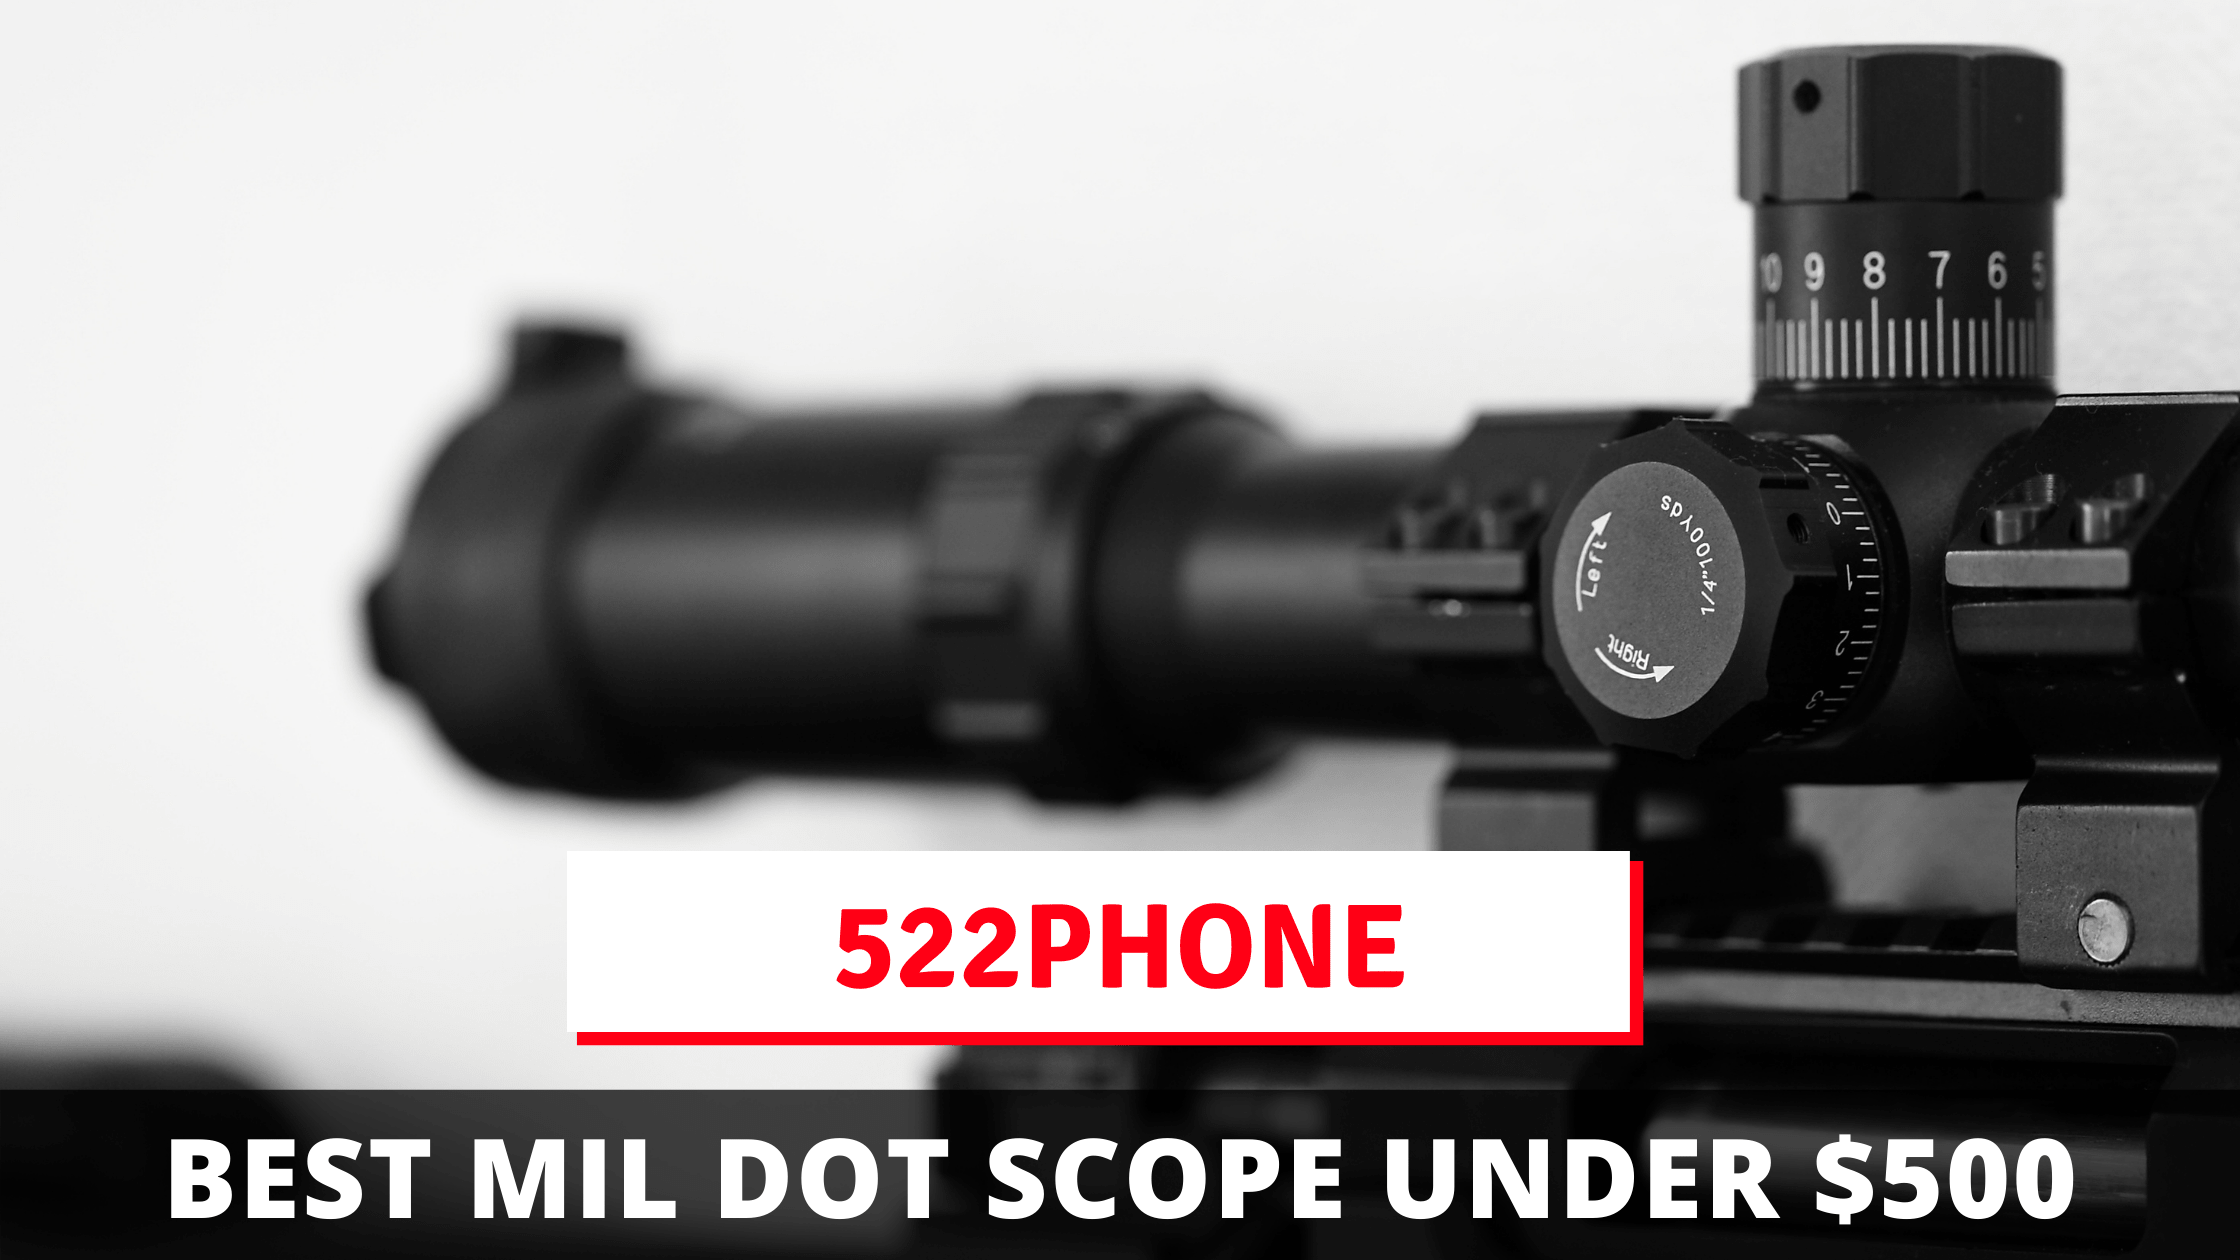 Best Mil Dot Scope Under $500